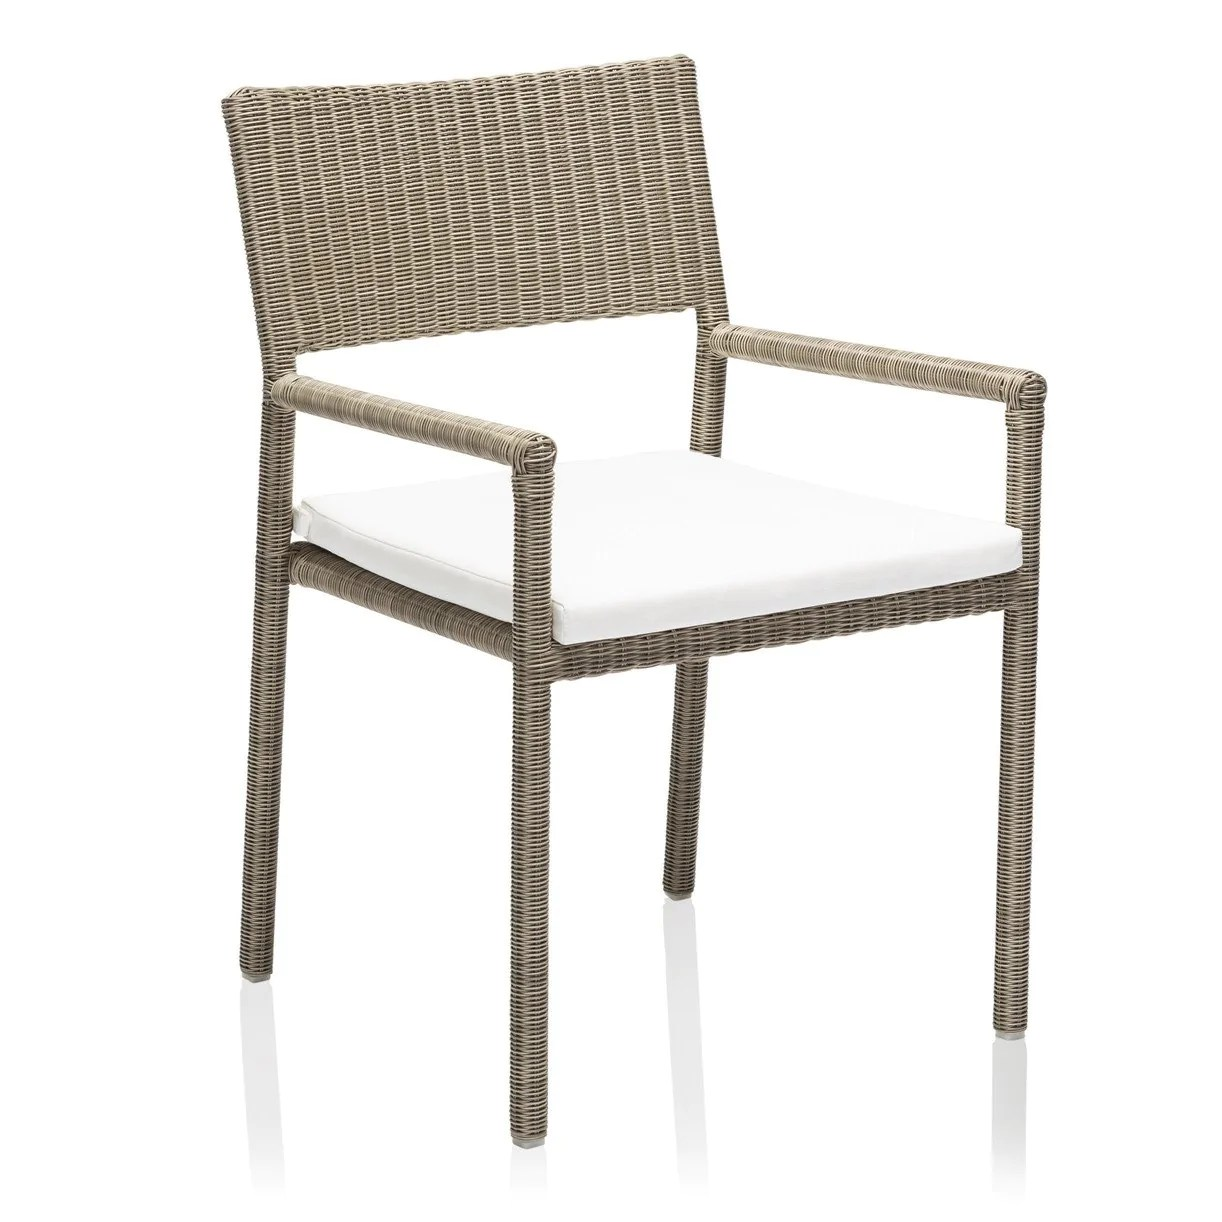 Wicker Outdoor Dining Chairs Tibo Outdoor Dining Chair